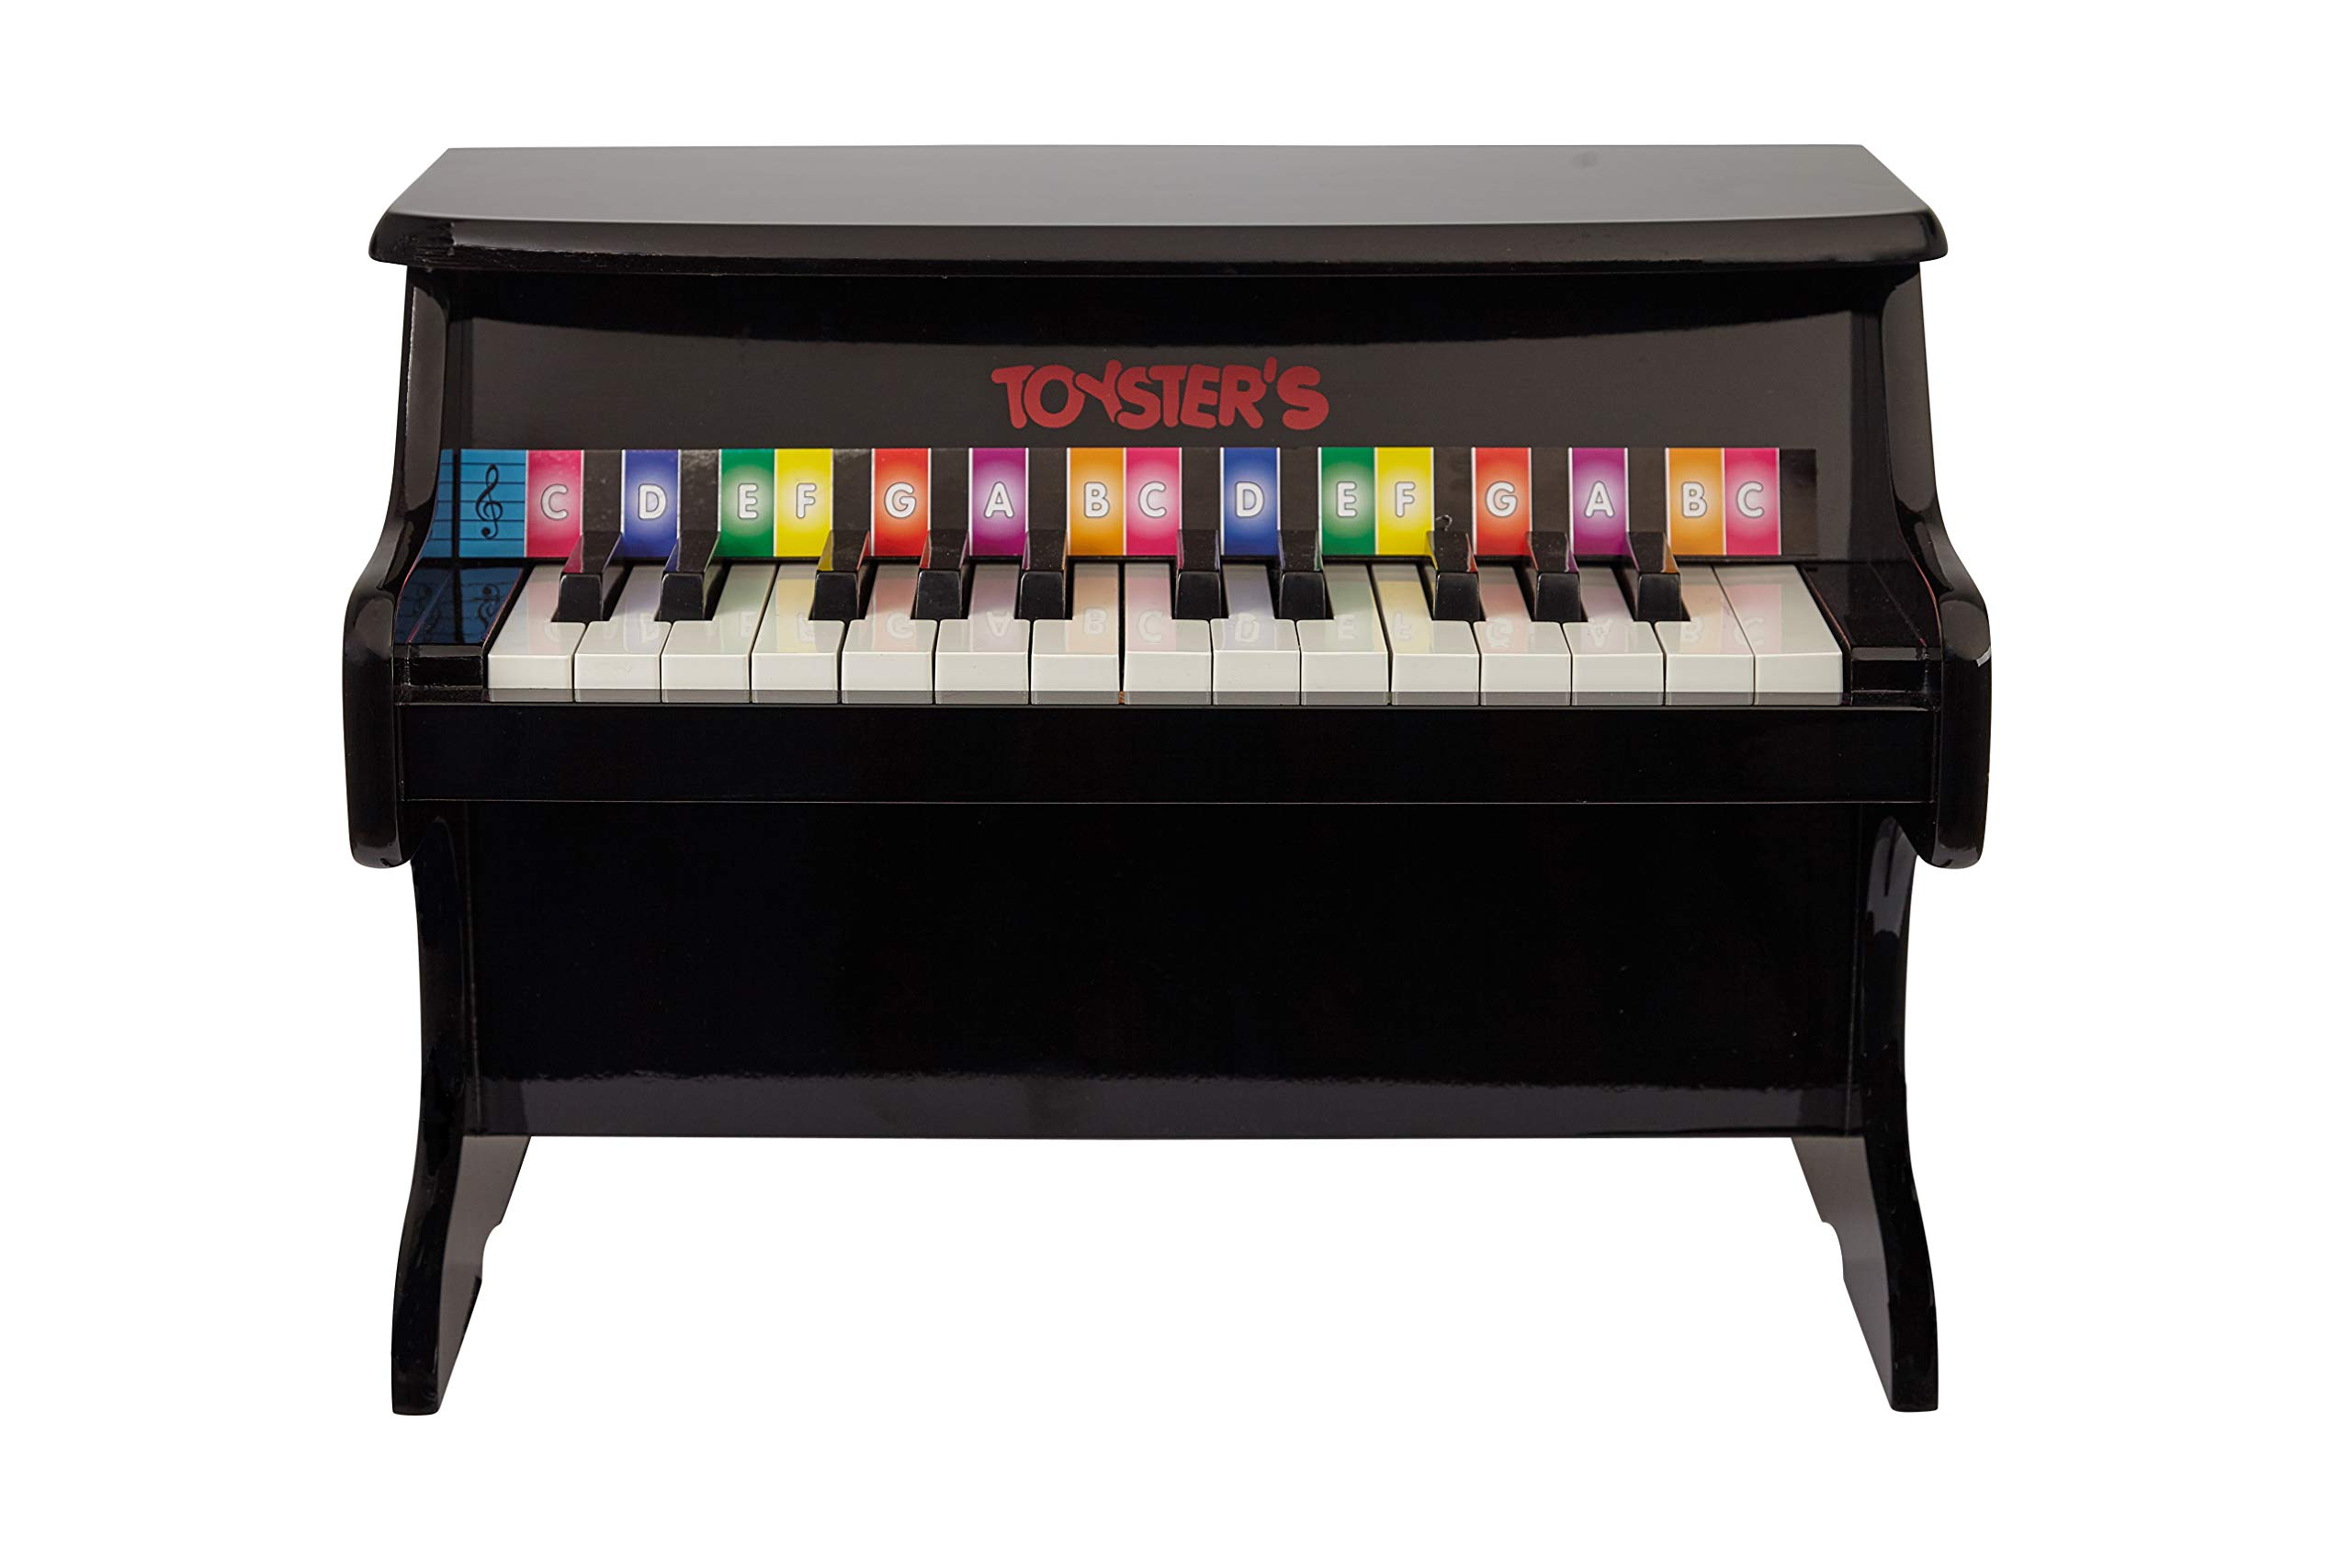 Toysters Toddler Piano Keyboard Toy | Fun Educational Learning Toys | Wonderful Kids Birthday Gift | Musical Toy with 25 Keys and Colorful Song Book | Help Children Discover Their Love of Music MU935 by TOYSTER'S